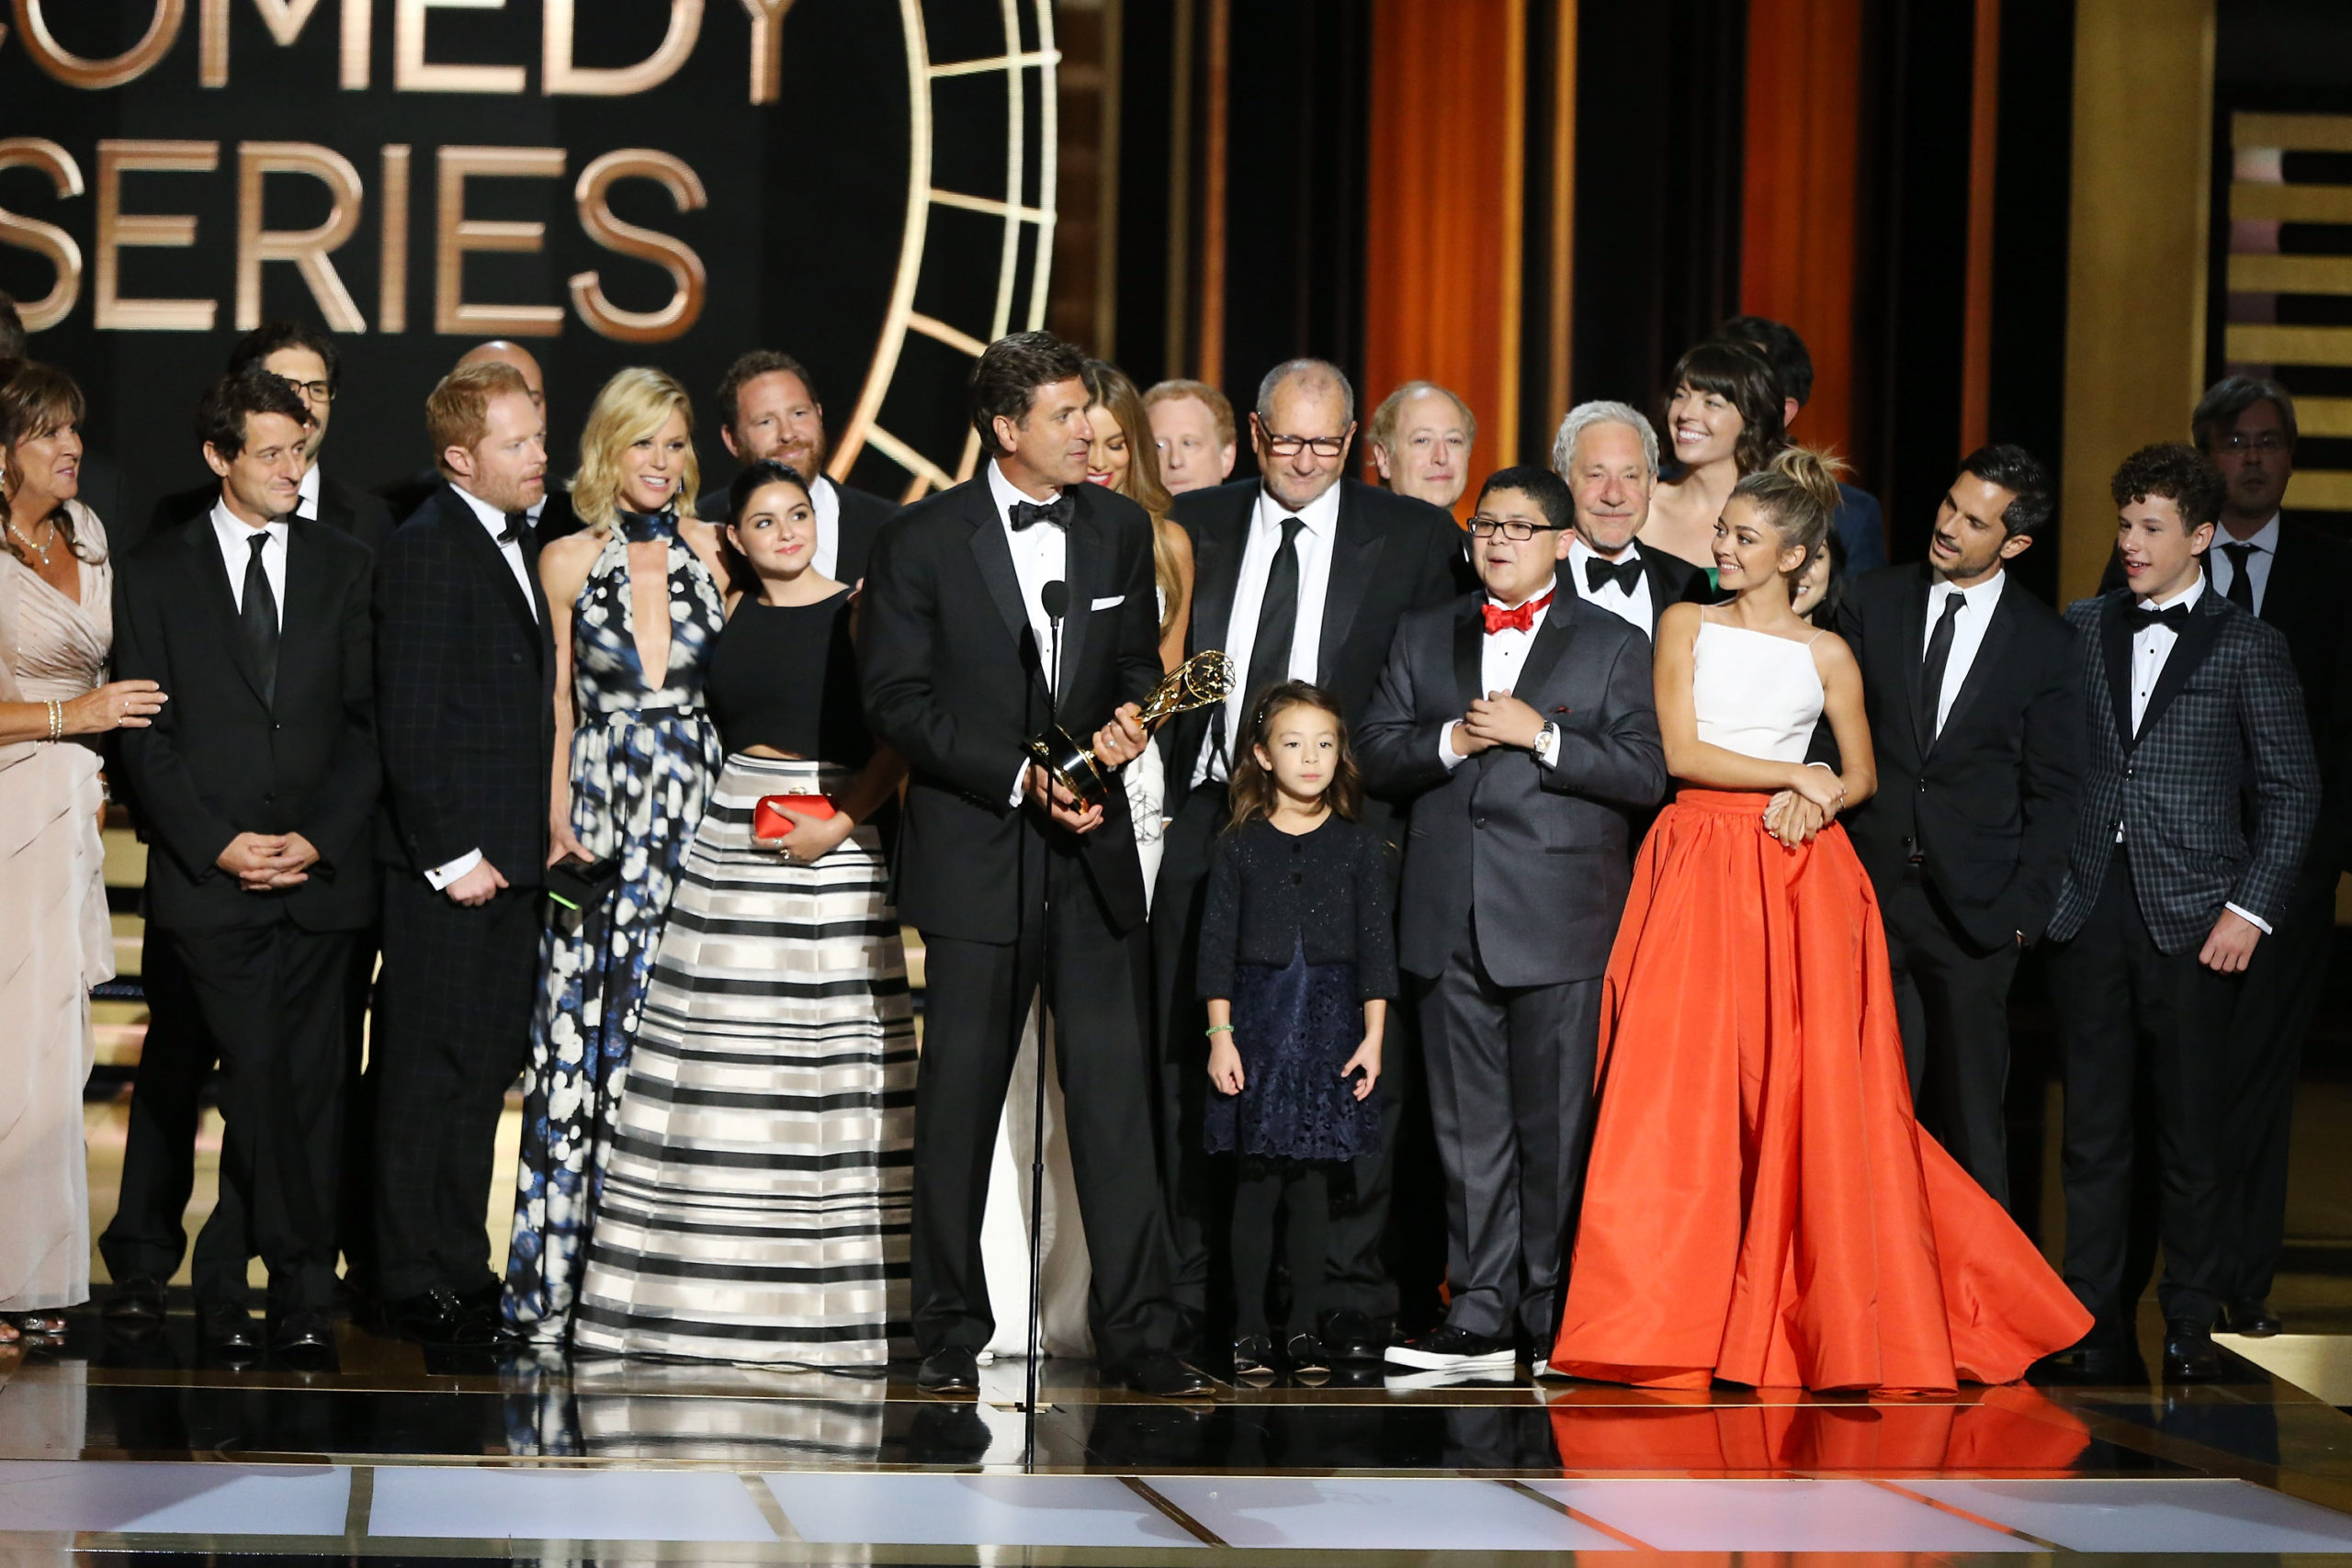 66th Annual Primetime Emmy Awards - Fixed Show